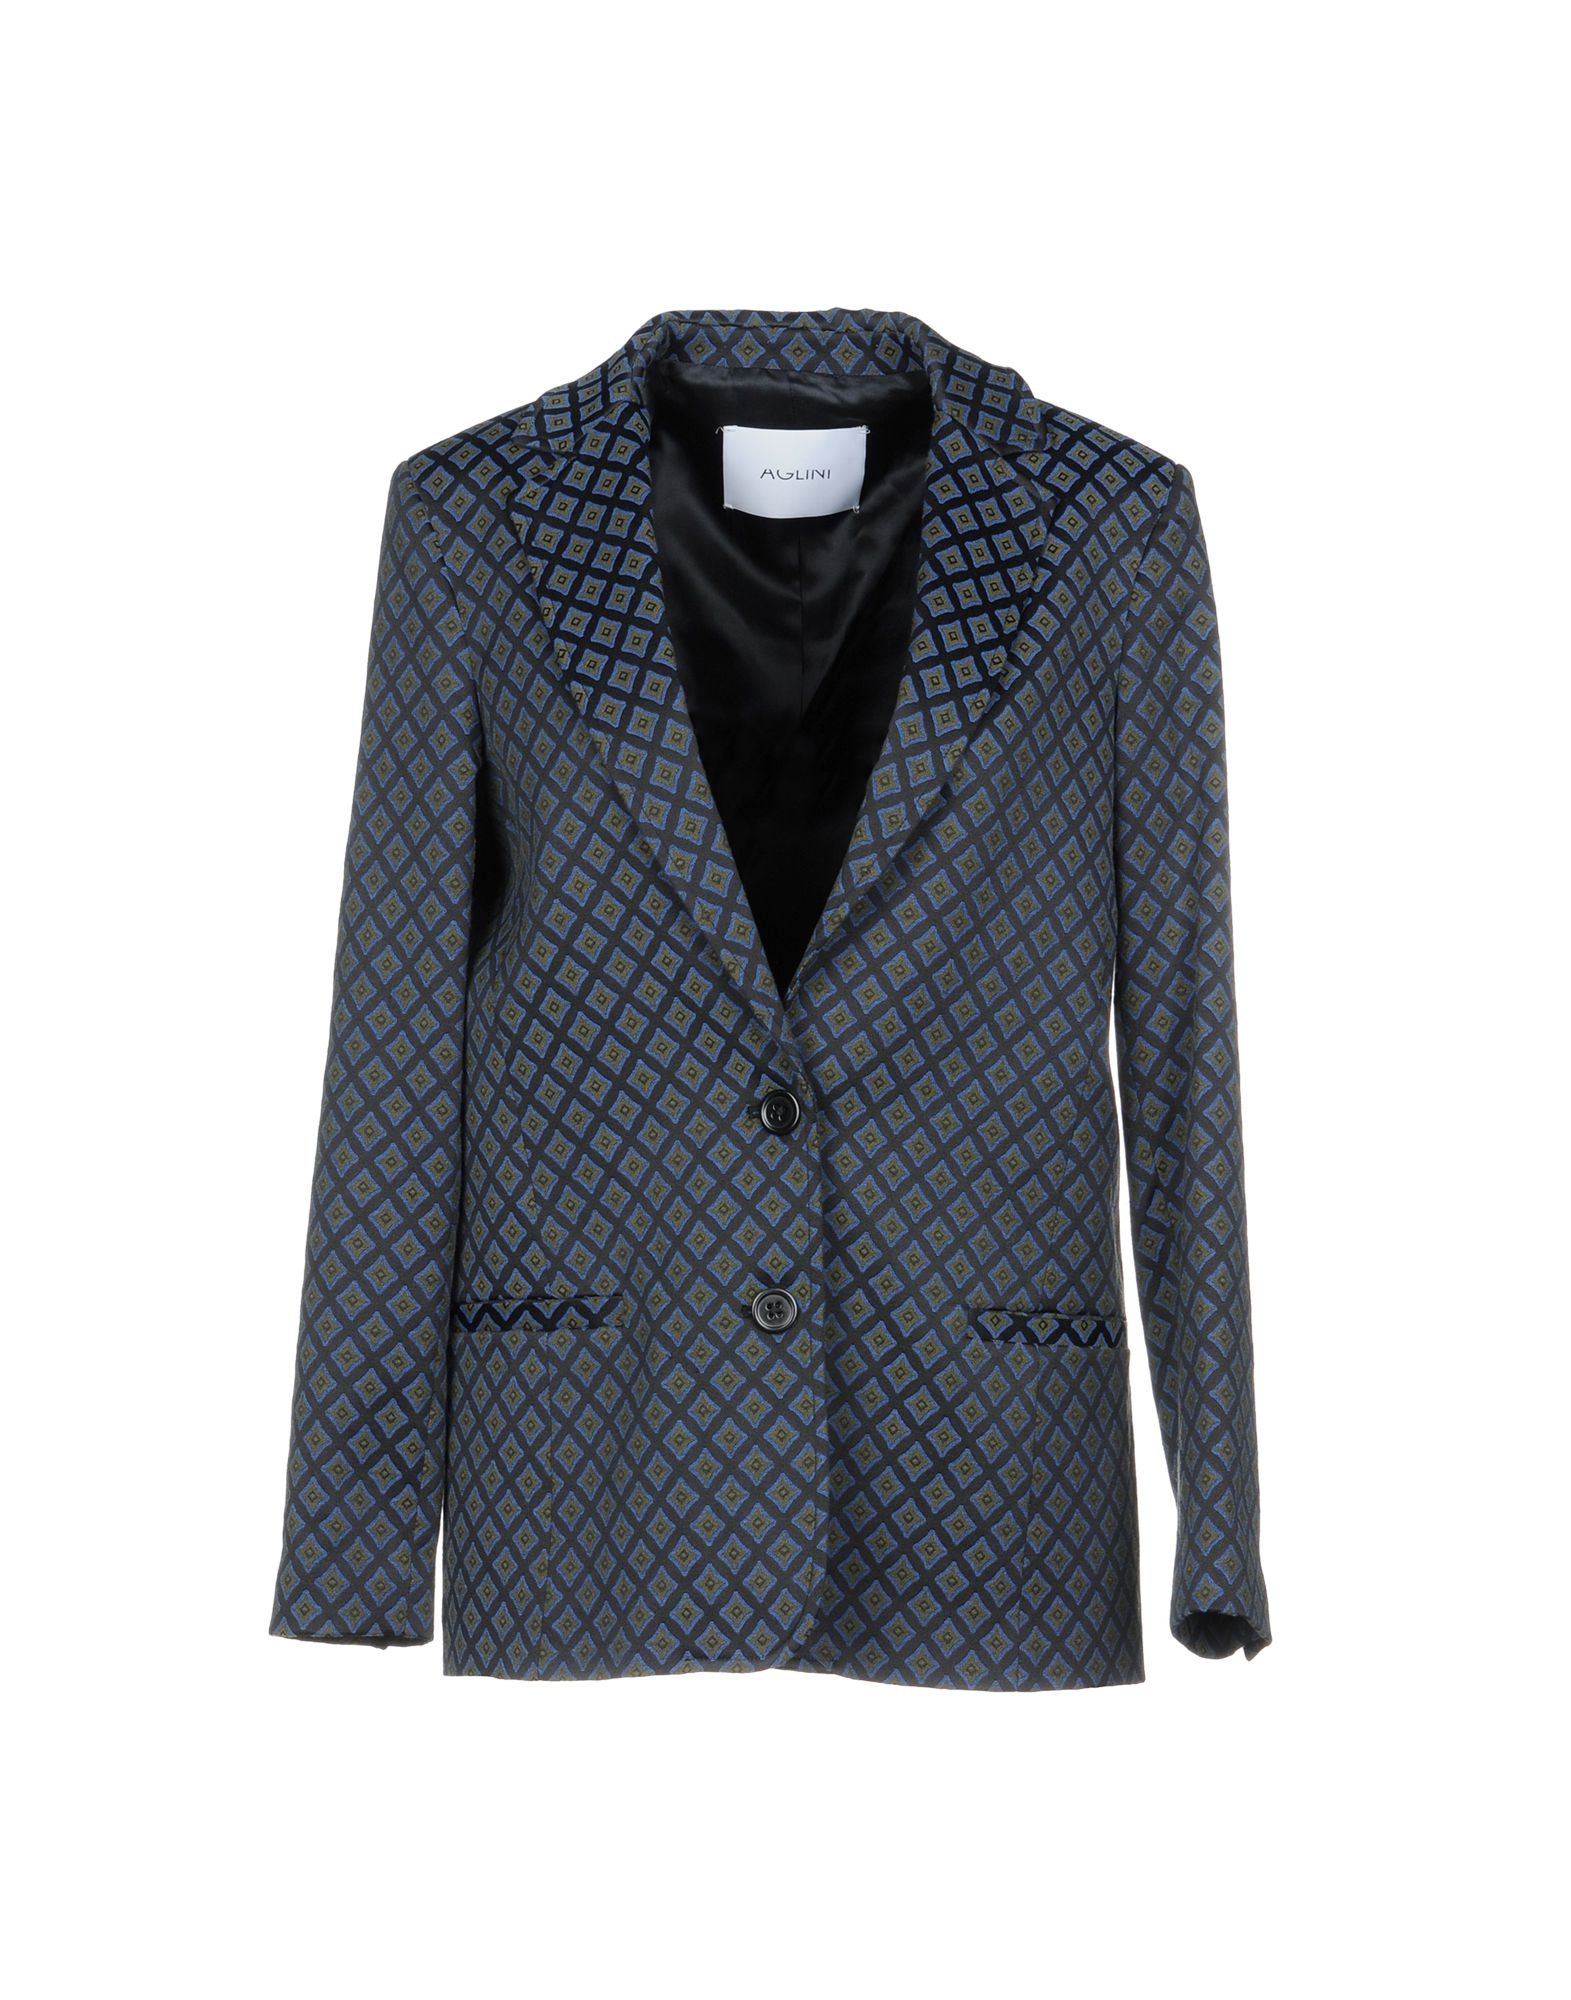 AGLINI Blazer in Dark Blue